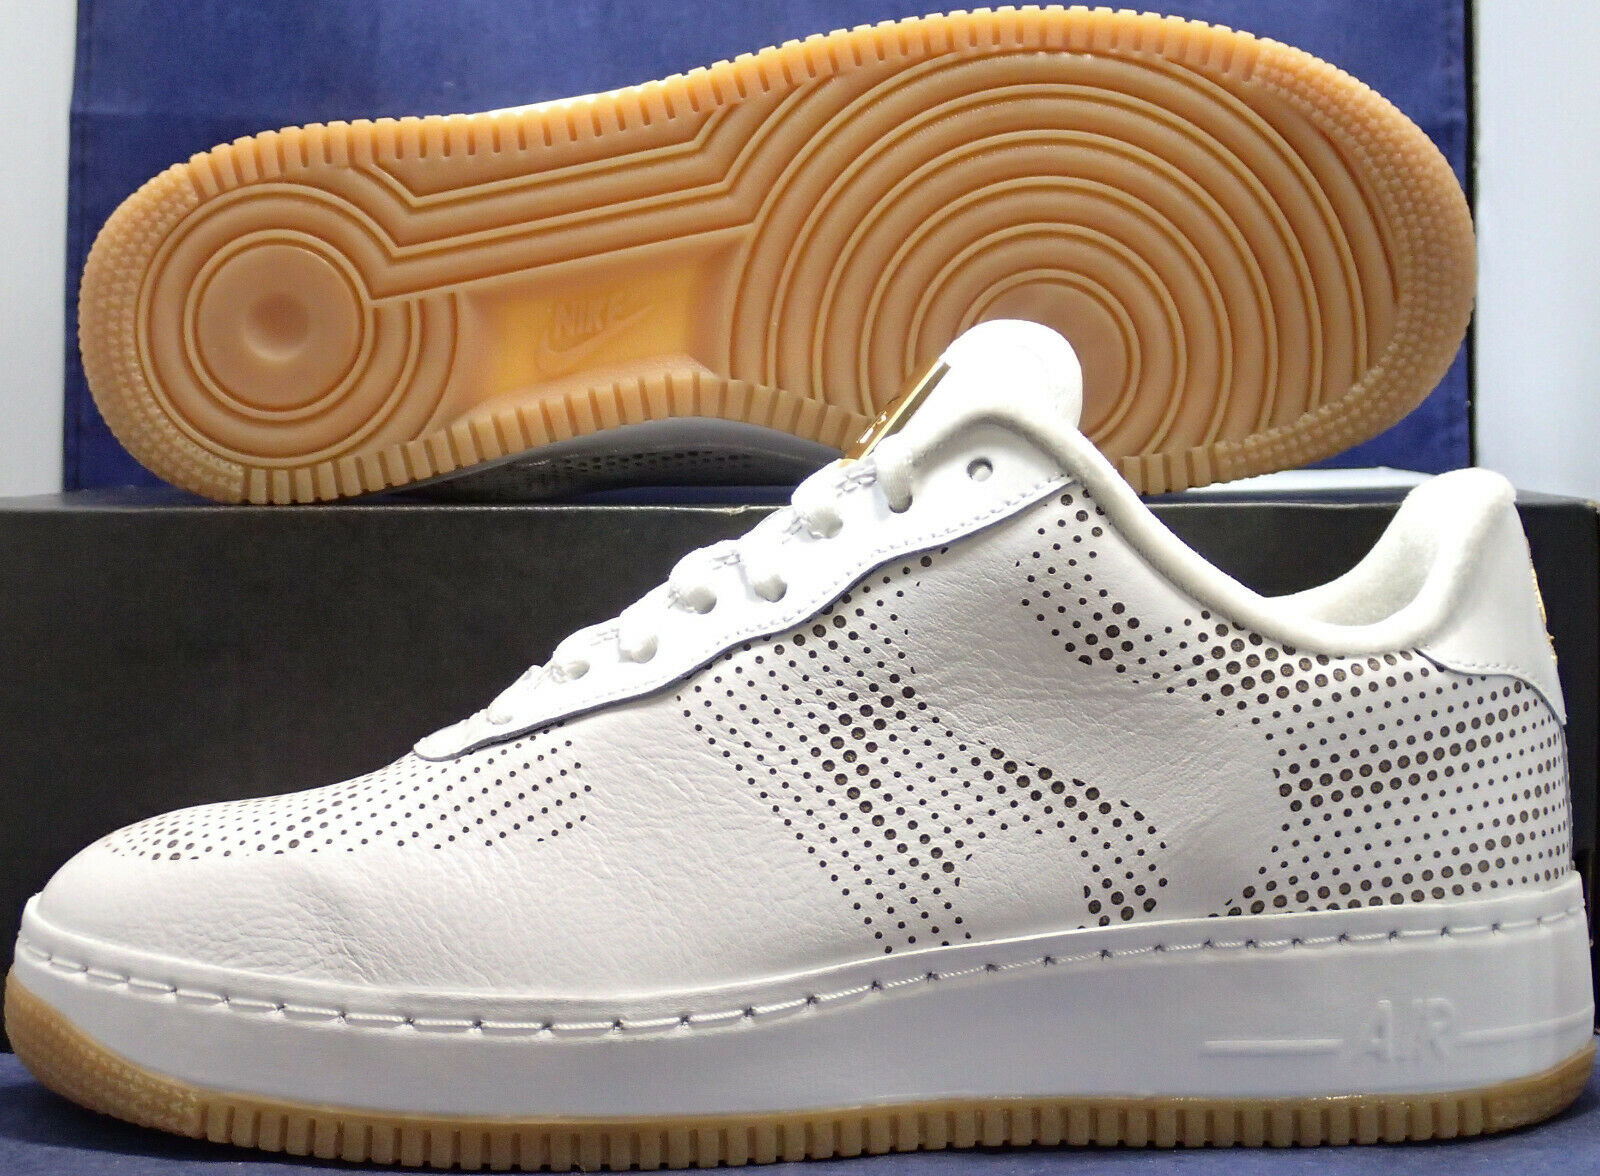 Nike Air Force 1 Low iD Serena Williams Strong and Sure RARE SZ 9.5 (CD2146-991)